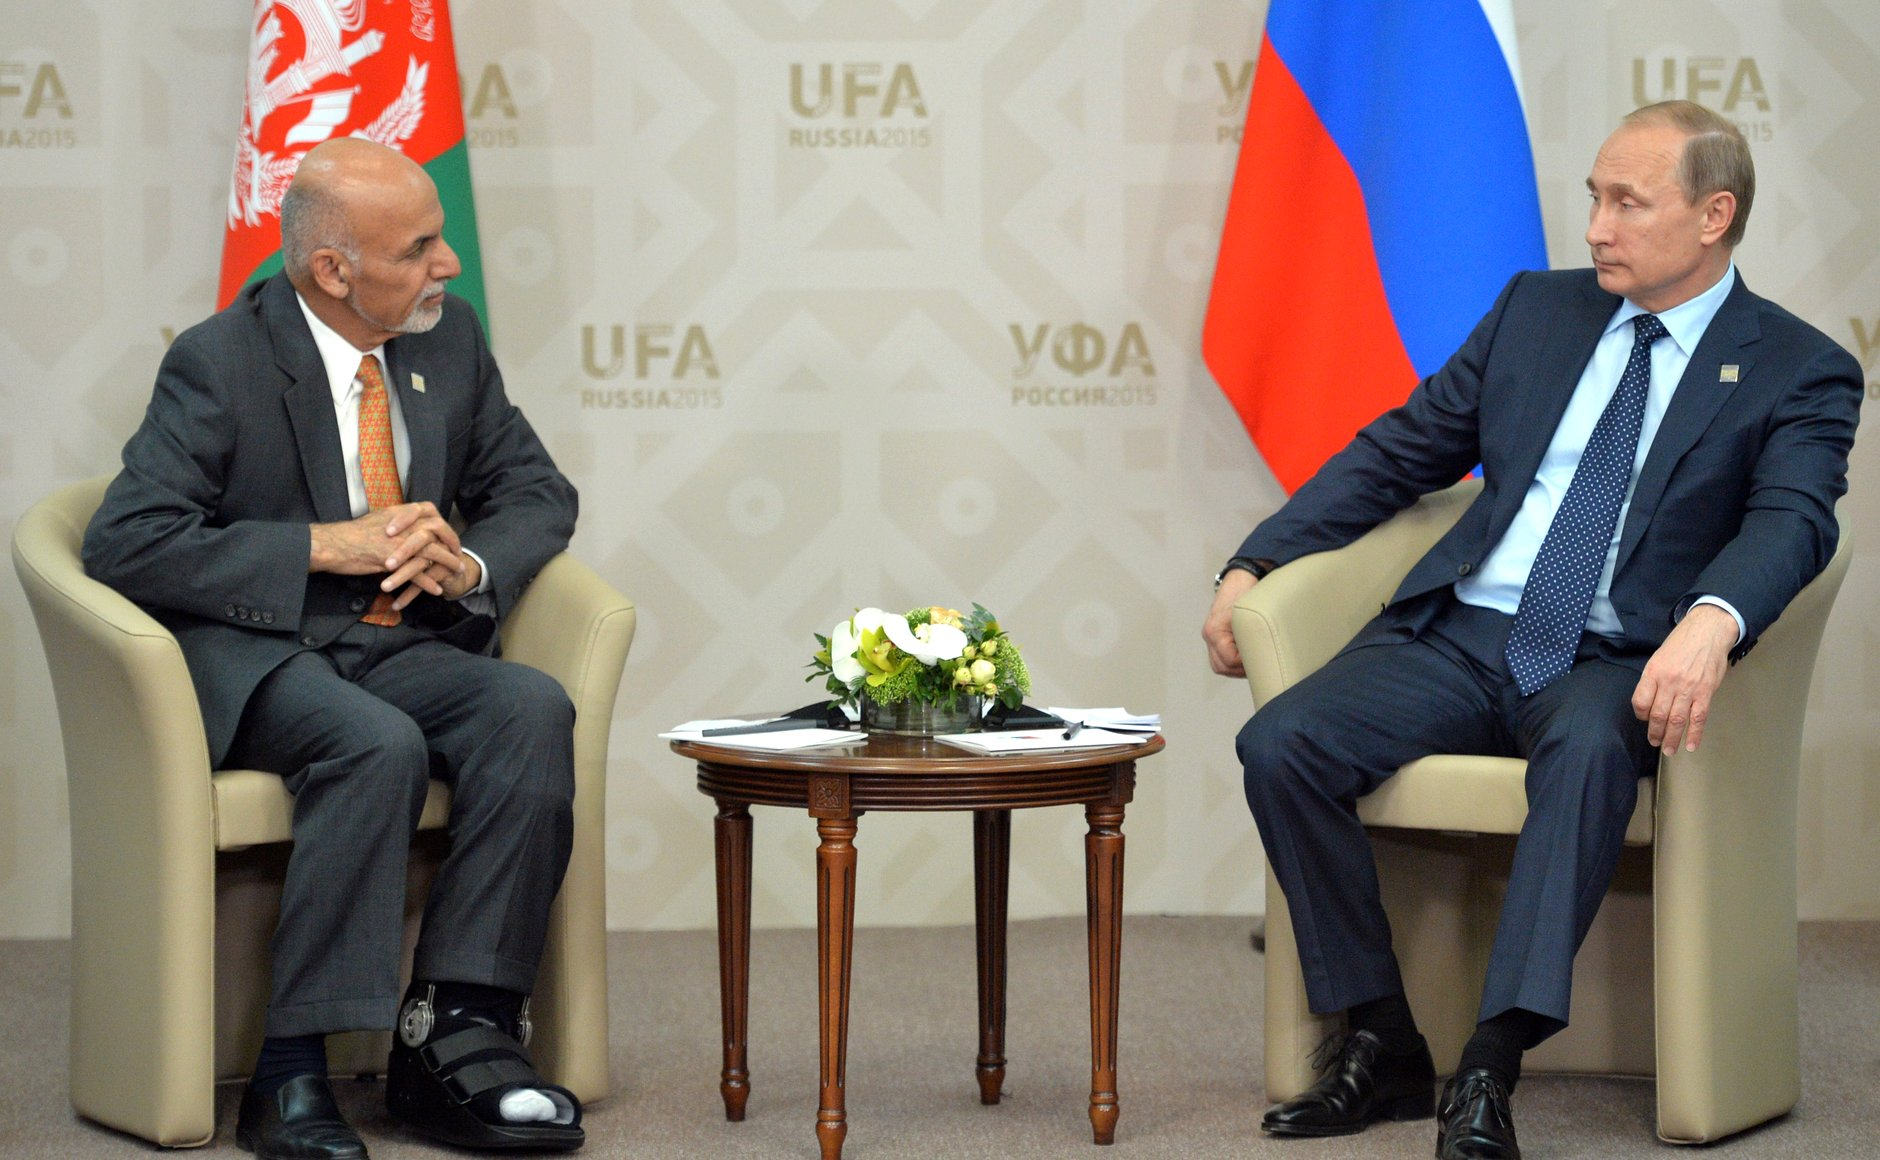 Vladimir Putin with Ashraf Ghani at the 2015 SCO summit in Ufa. Russia has repeatedly expressed its backing for the Kabul government. Source: Kremlin.ru